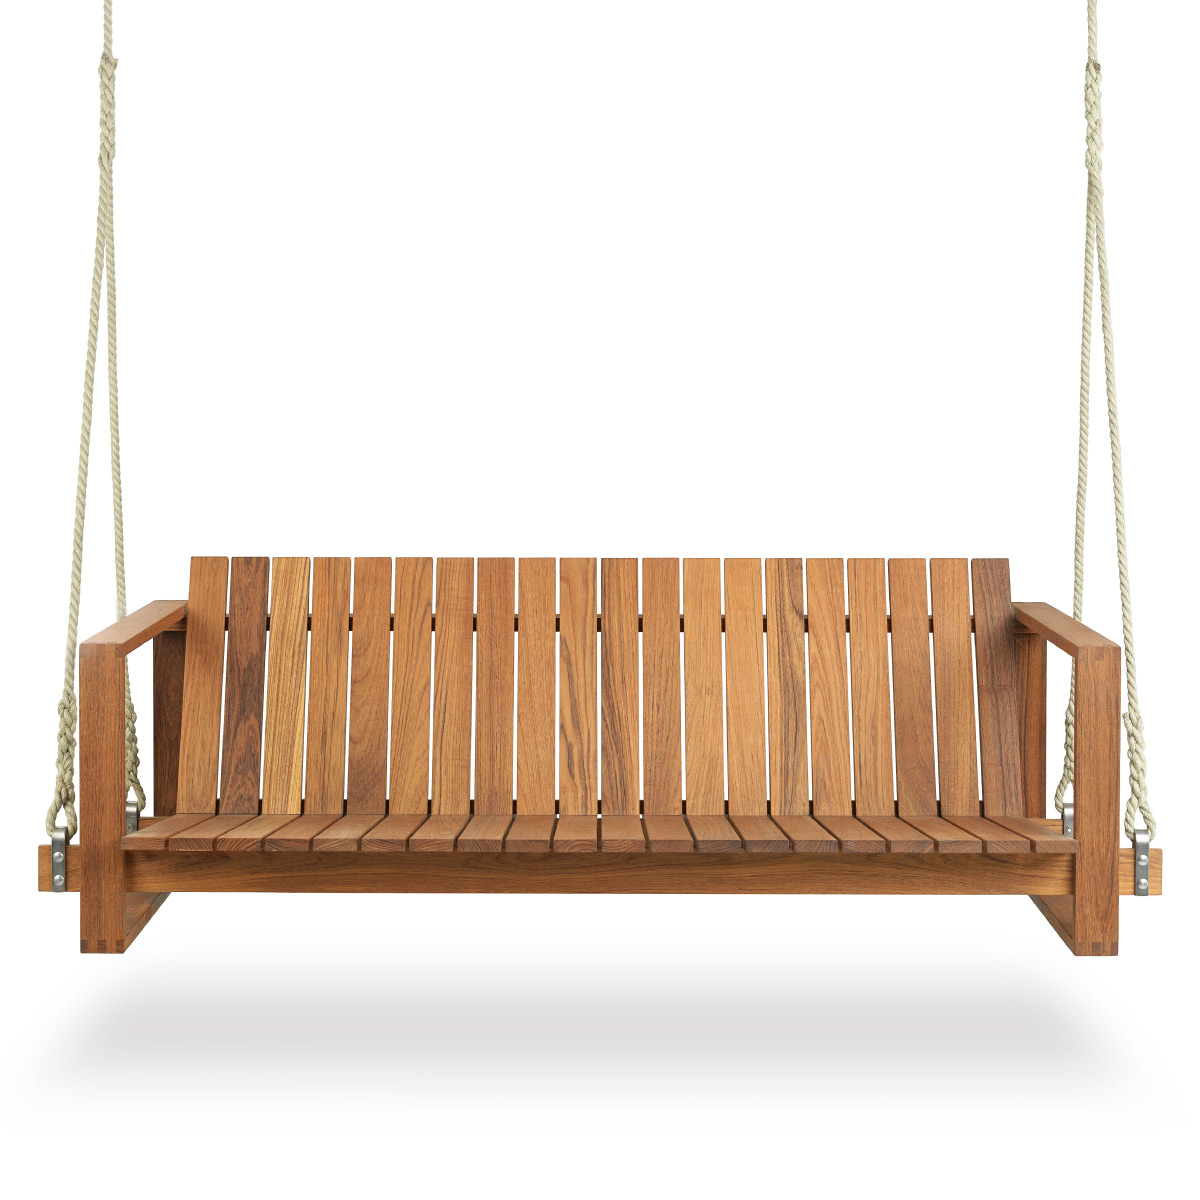 Well Known Carl Hansen And Son Bk13 Swing Sofa, Teak Oil Intended For 2 Person Light Teak Oil Wood Outdoor Swings (View 6 of 30)